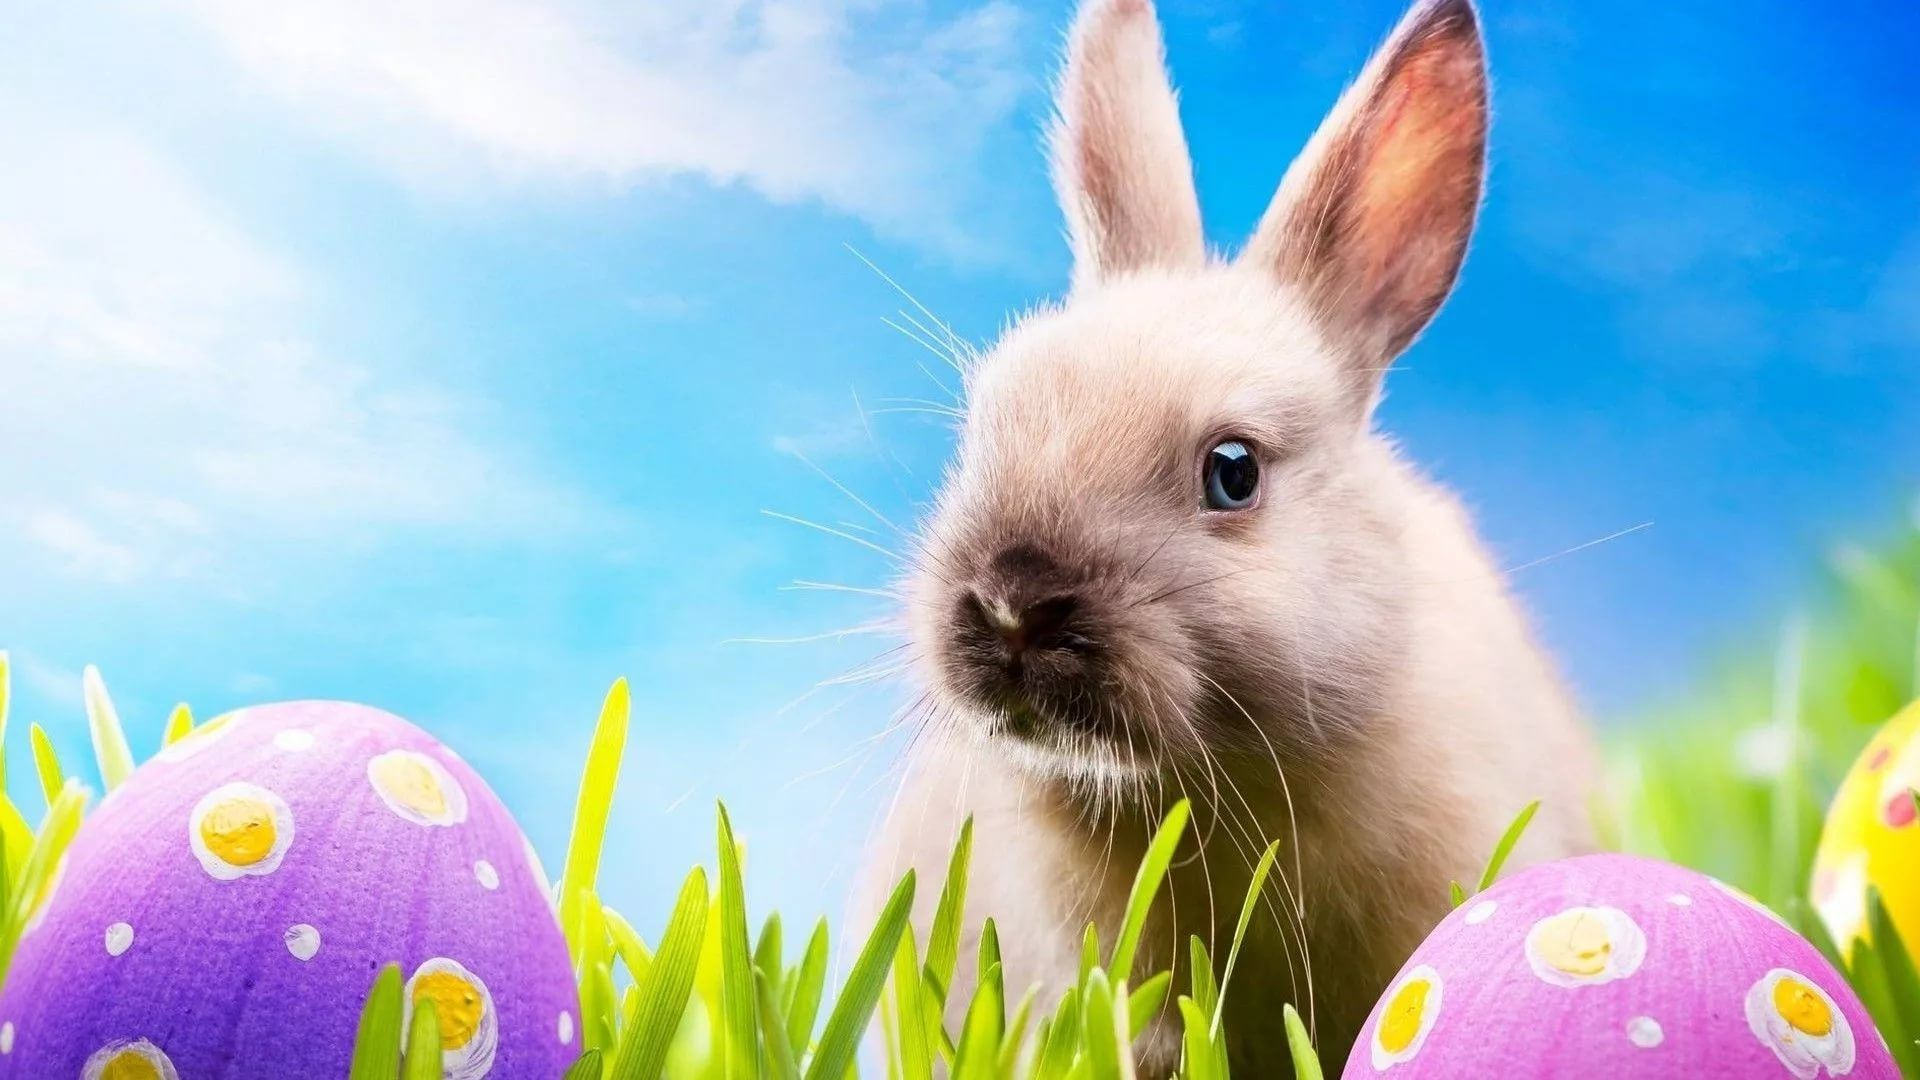 Happy Easter wallpaper image